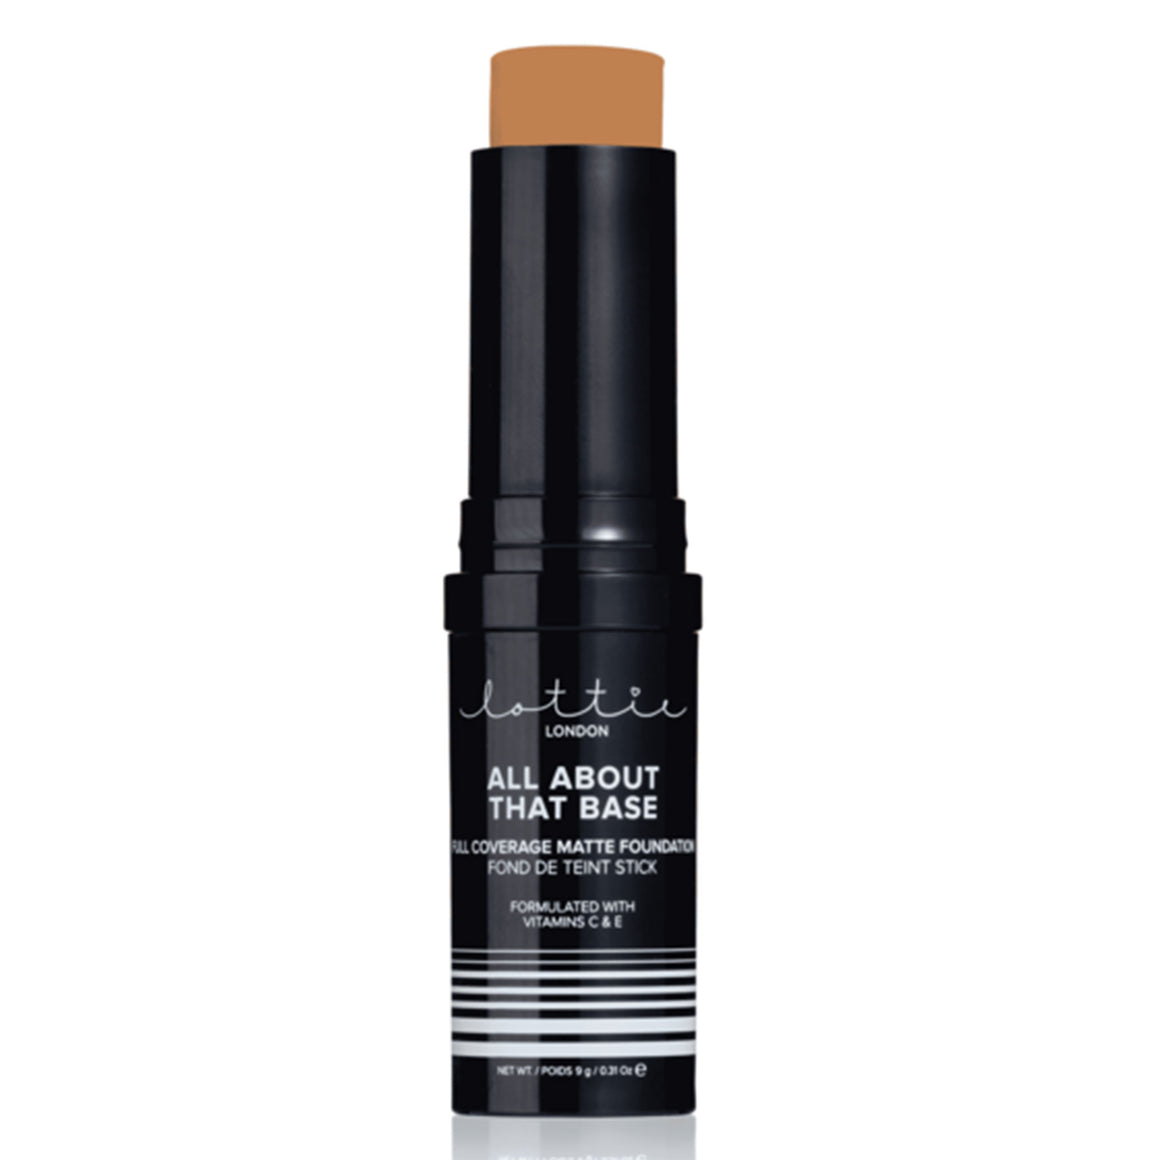 Lottie London - All About That Base Foundation Stick - Golden